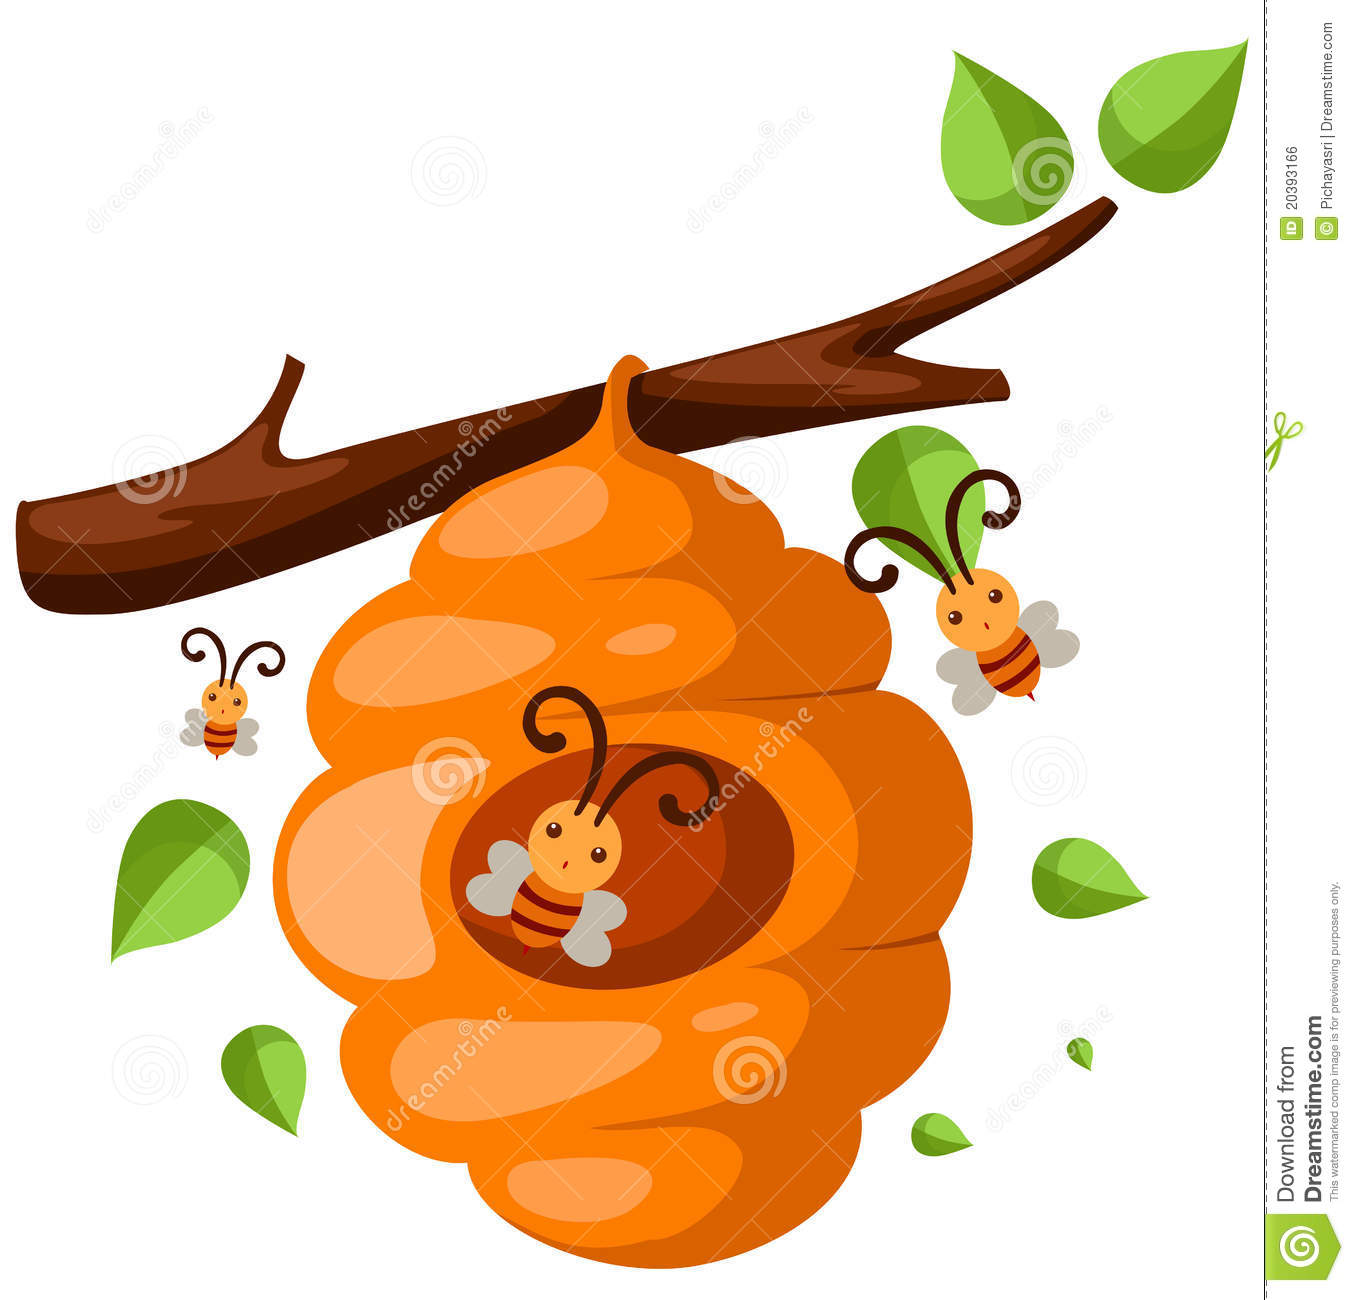 Beehive from tree clipart picture black and white download Beehive Branch Royalty Free Stock Image - Image: 20393166 picture black and white download